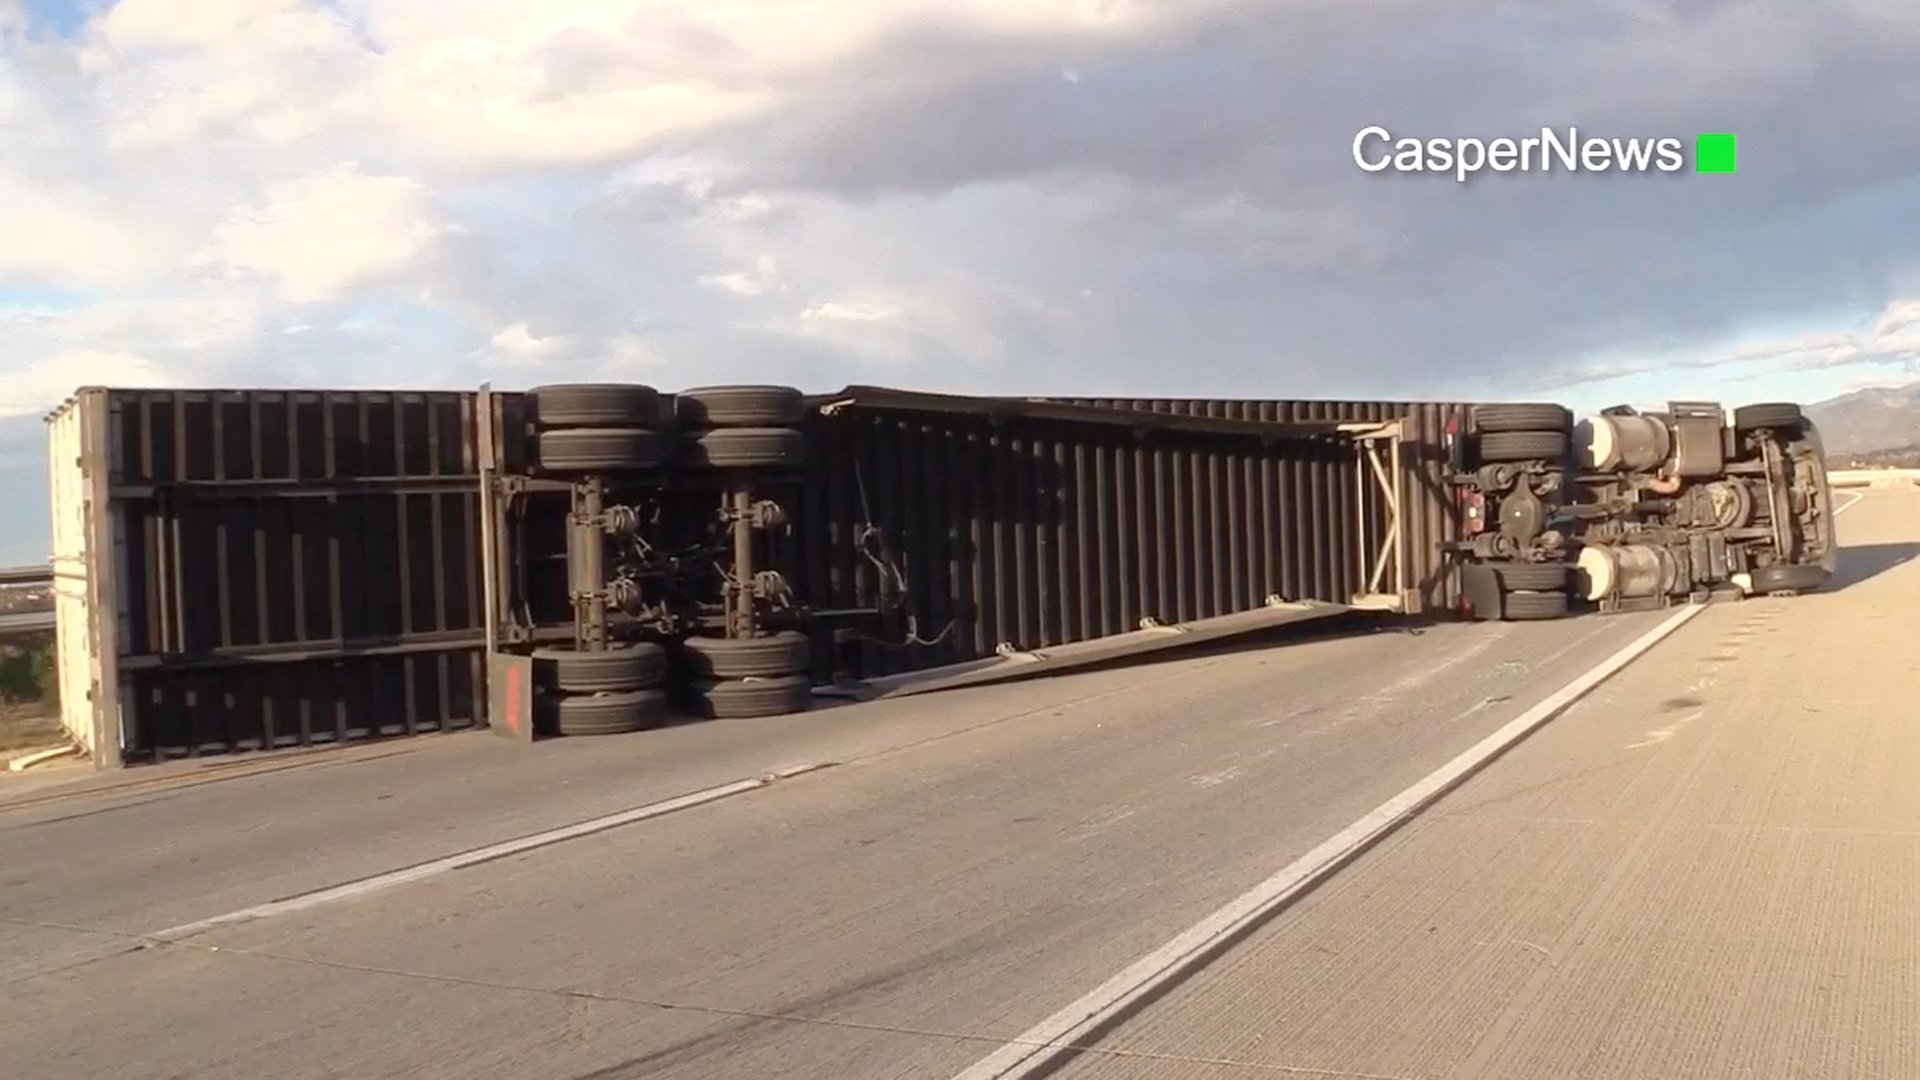 Powerful winds blew over a big rig hauling more than two tons of furniture in the Fontana area on Feb. 10, 2020. (Credit: CasperNews)